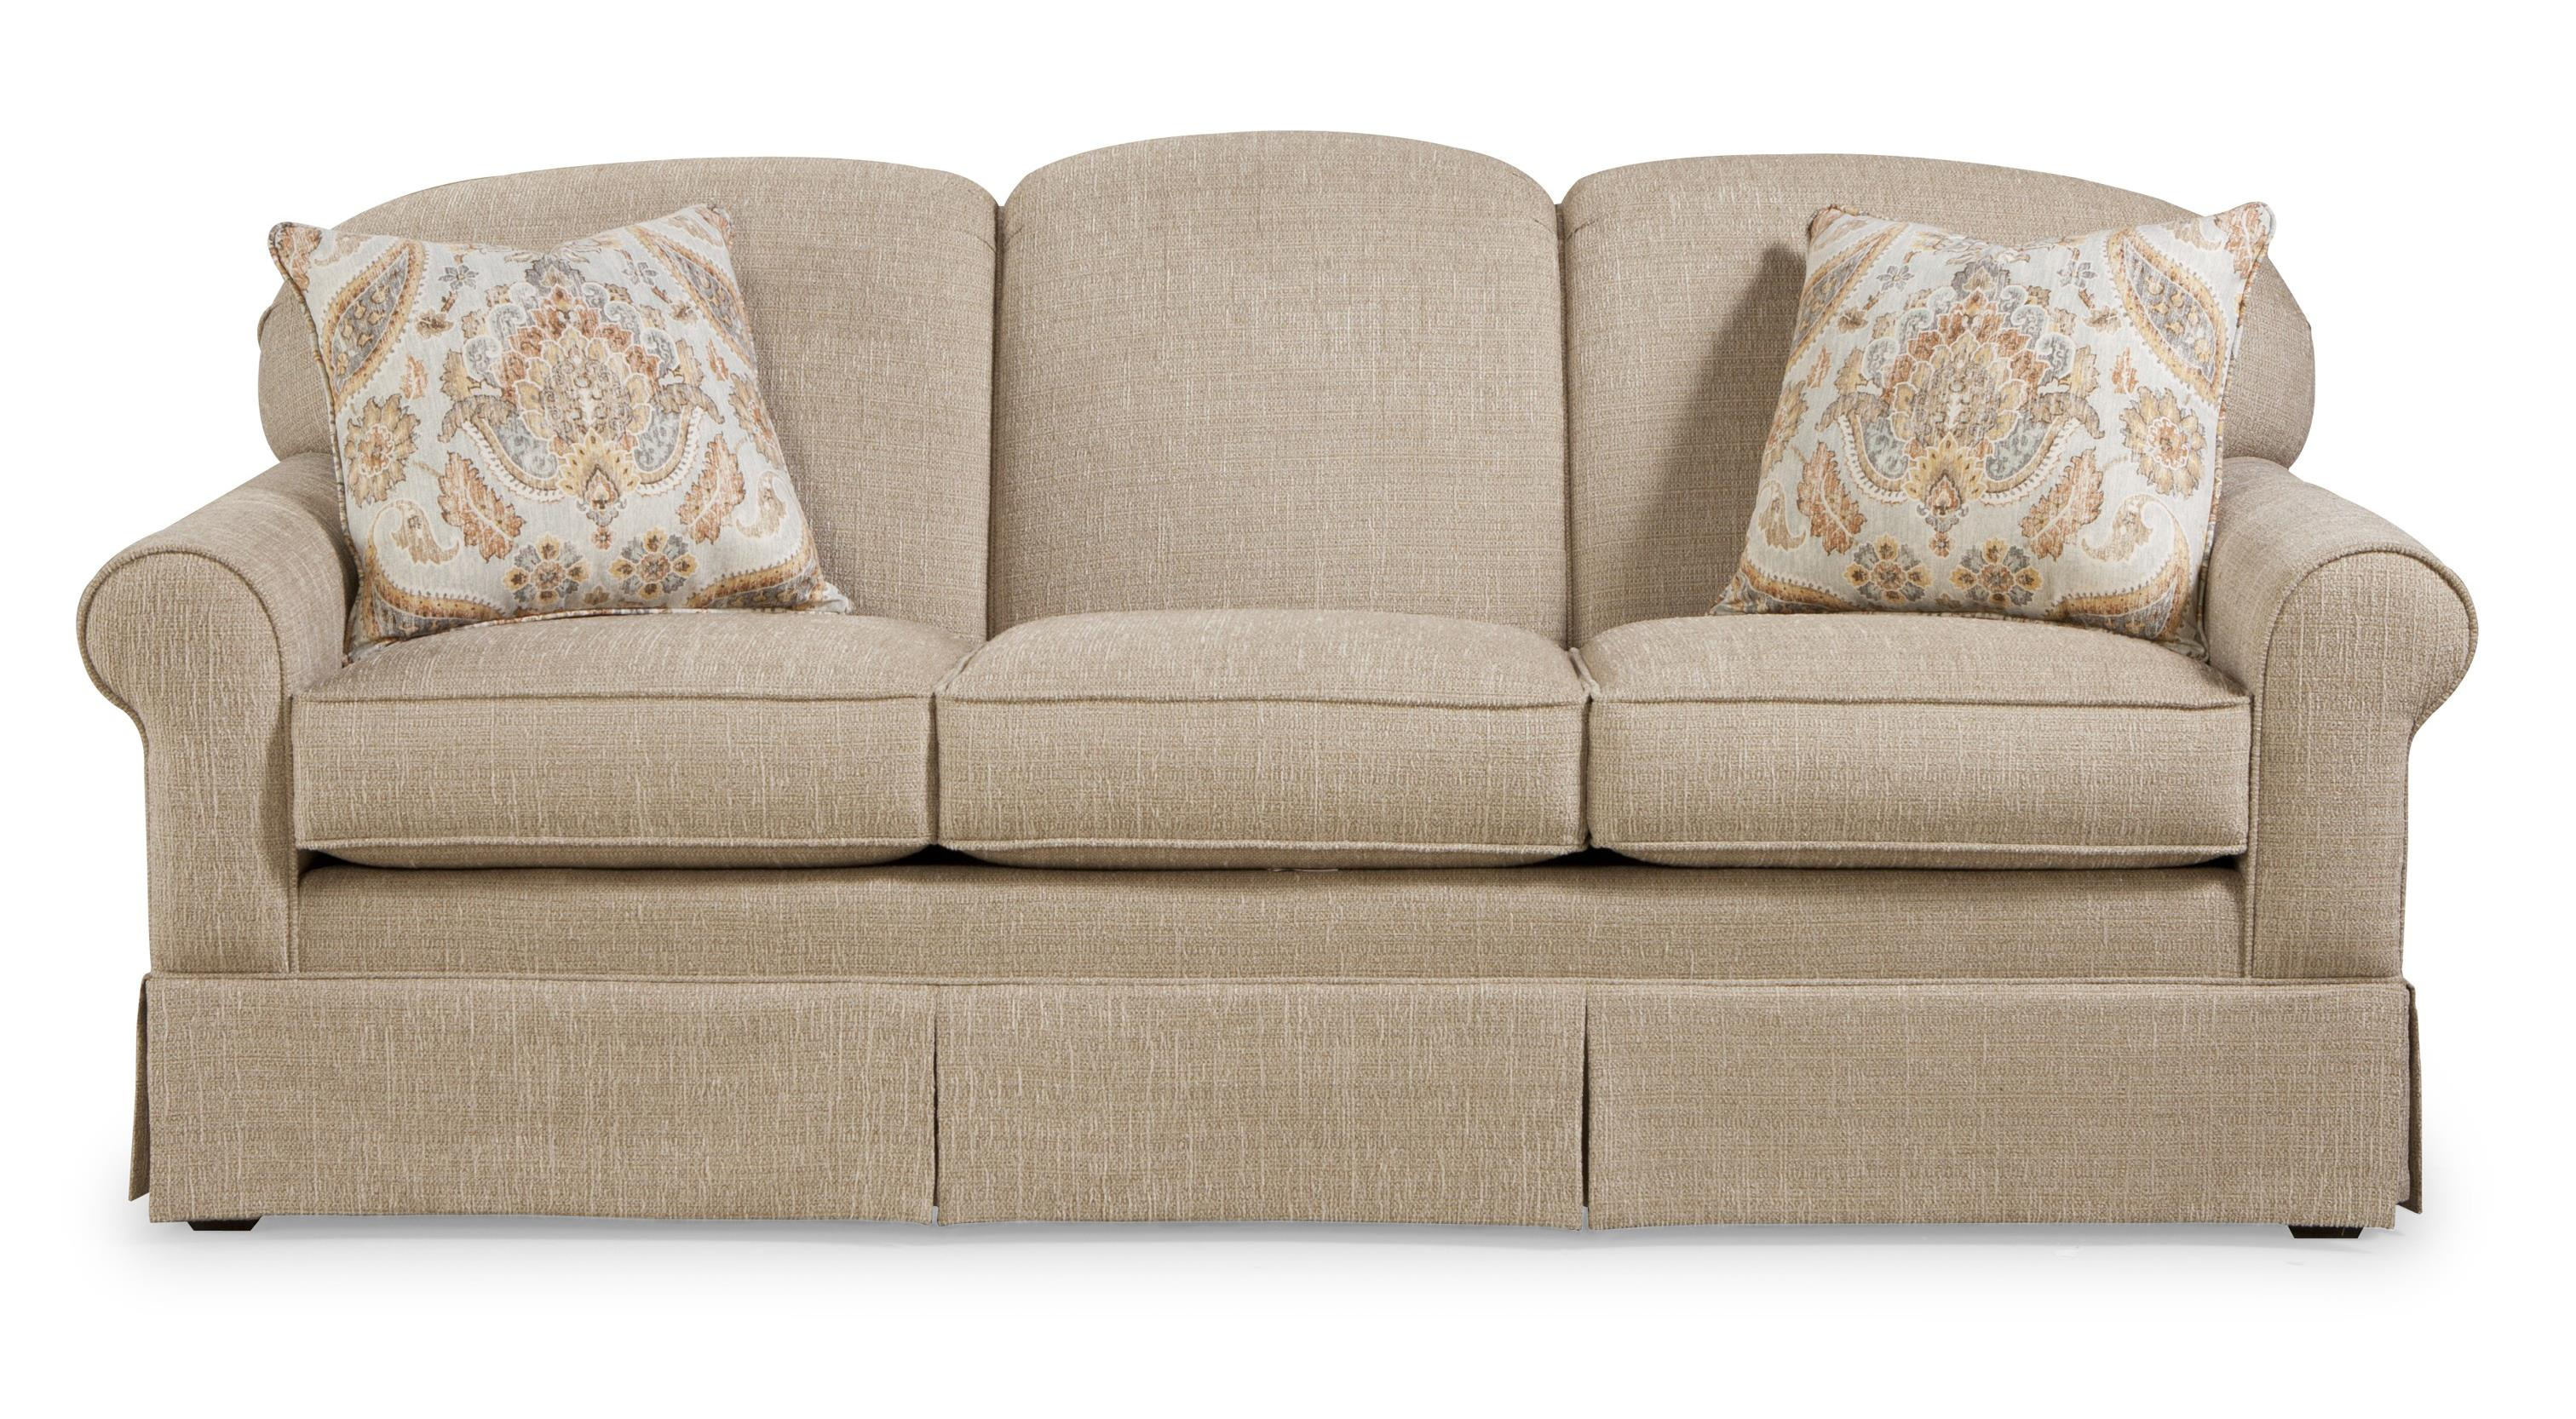 Merveilleux Casual Sofa With Tight Arched Back And Skirt